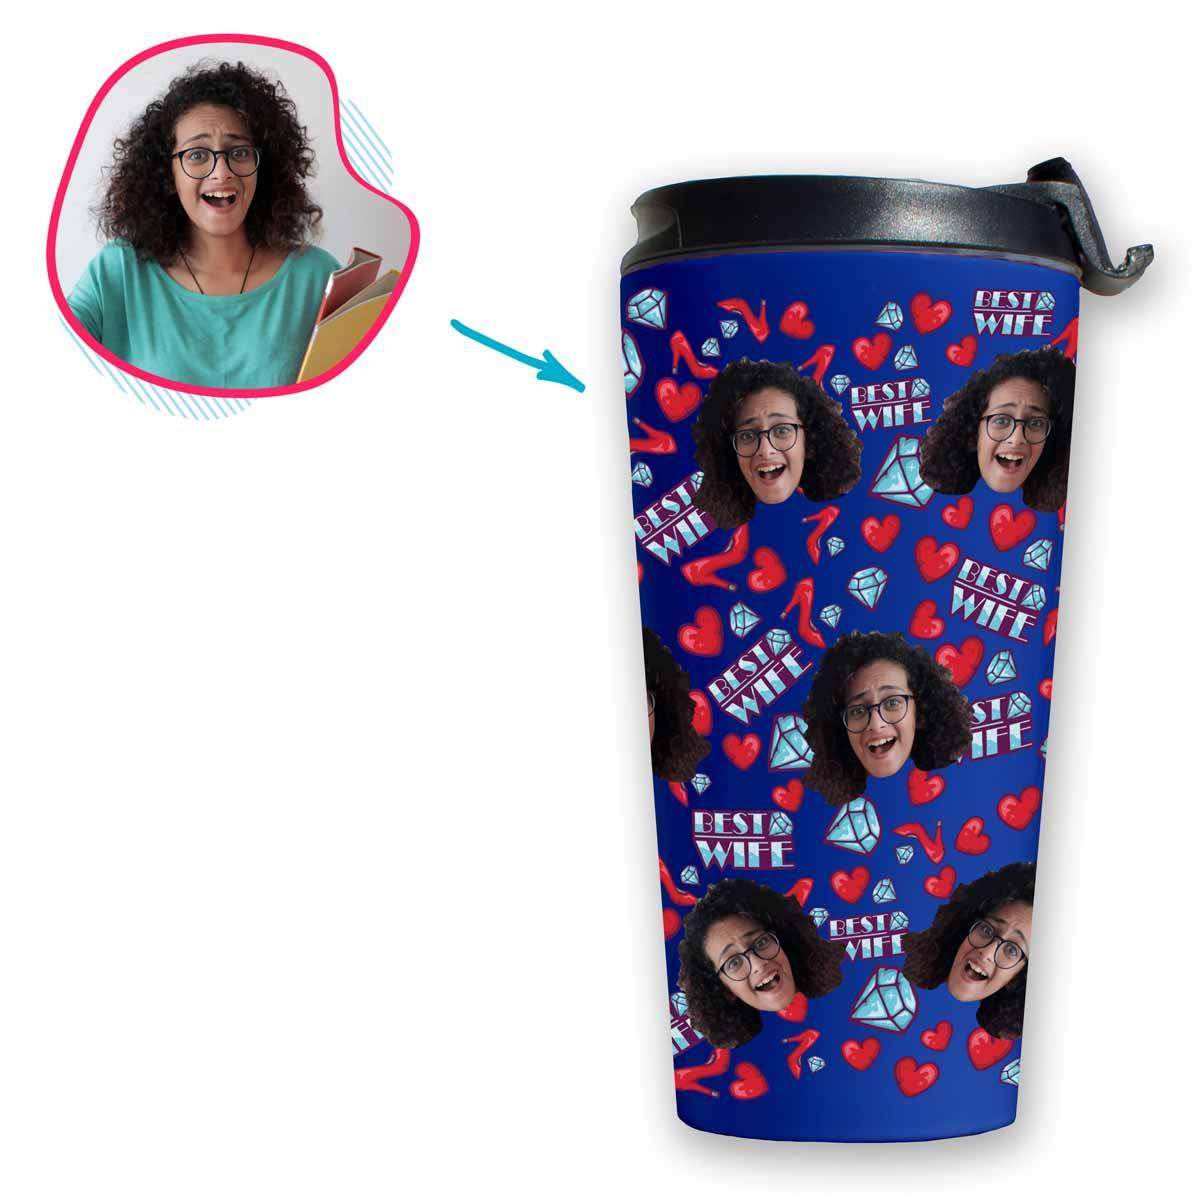 Darkblue Wife personalized travel mug with photo of face printed on it